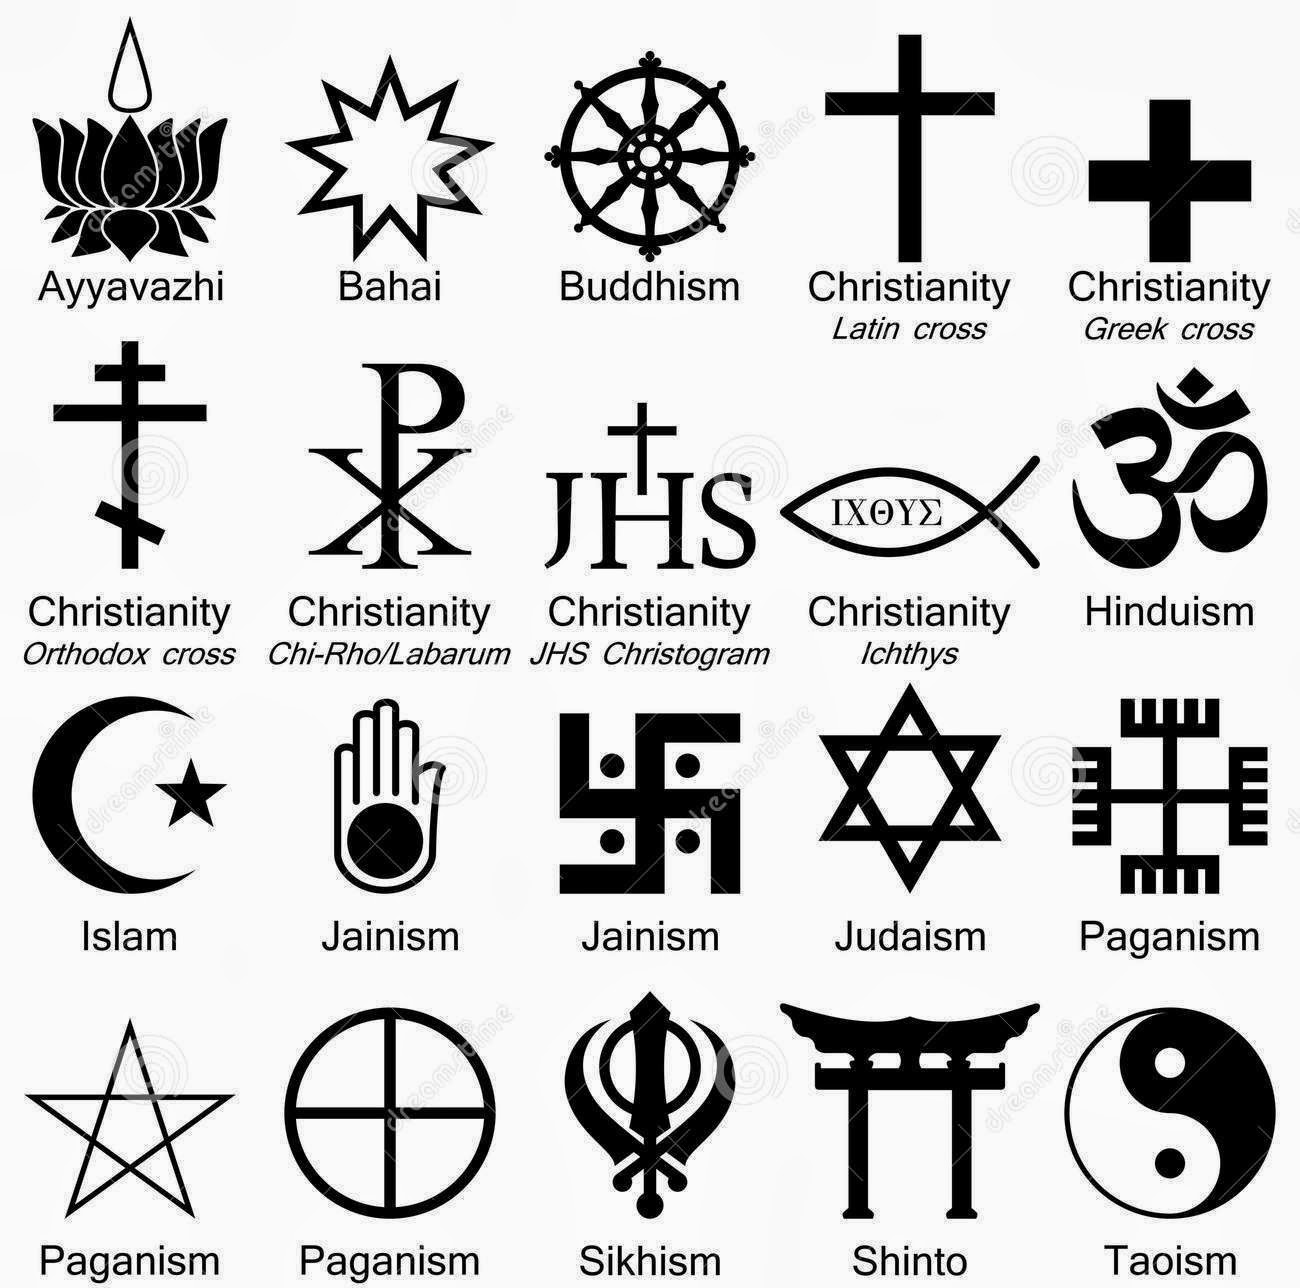 Religious symbolism and iconography